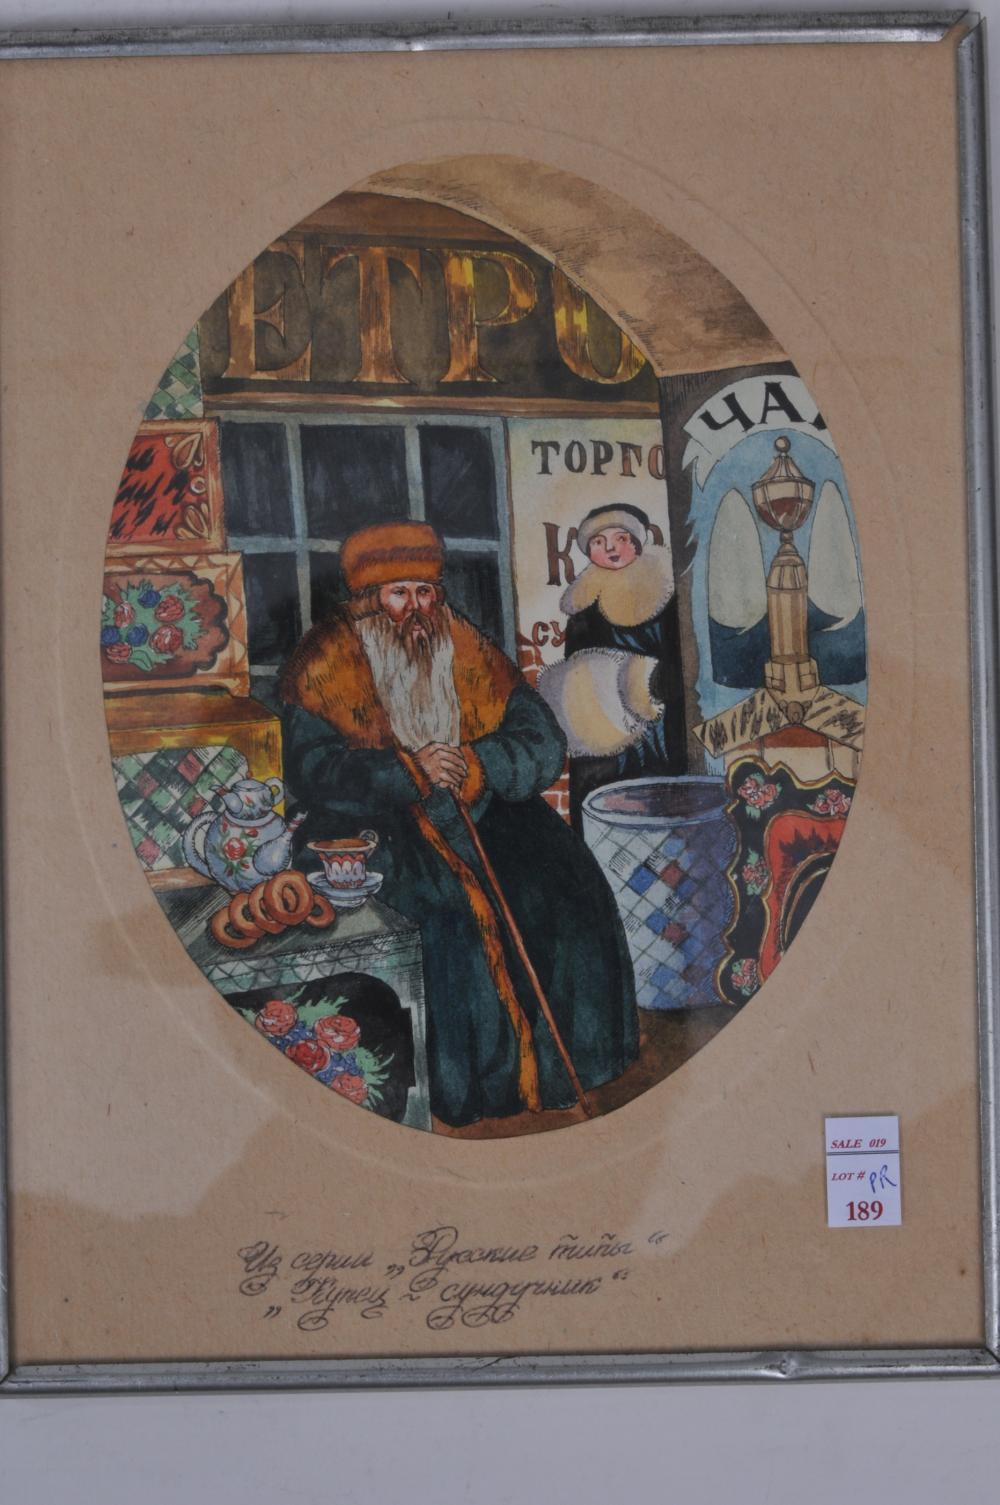 """Lot 189: Pair of early 20th century Russian watercolor paintings depicting sidewalk bazaar merchants and a large robust figure walking thru the city. Each notated in Cyrillic on the mats. Framed. Oval format size: 6-3/4"""" x 5-1/4"""". Overall size: 9-1/2"""" x 7"""". O"""